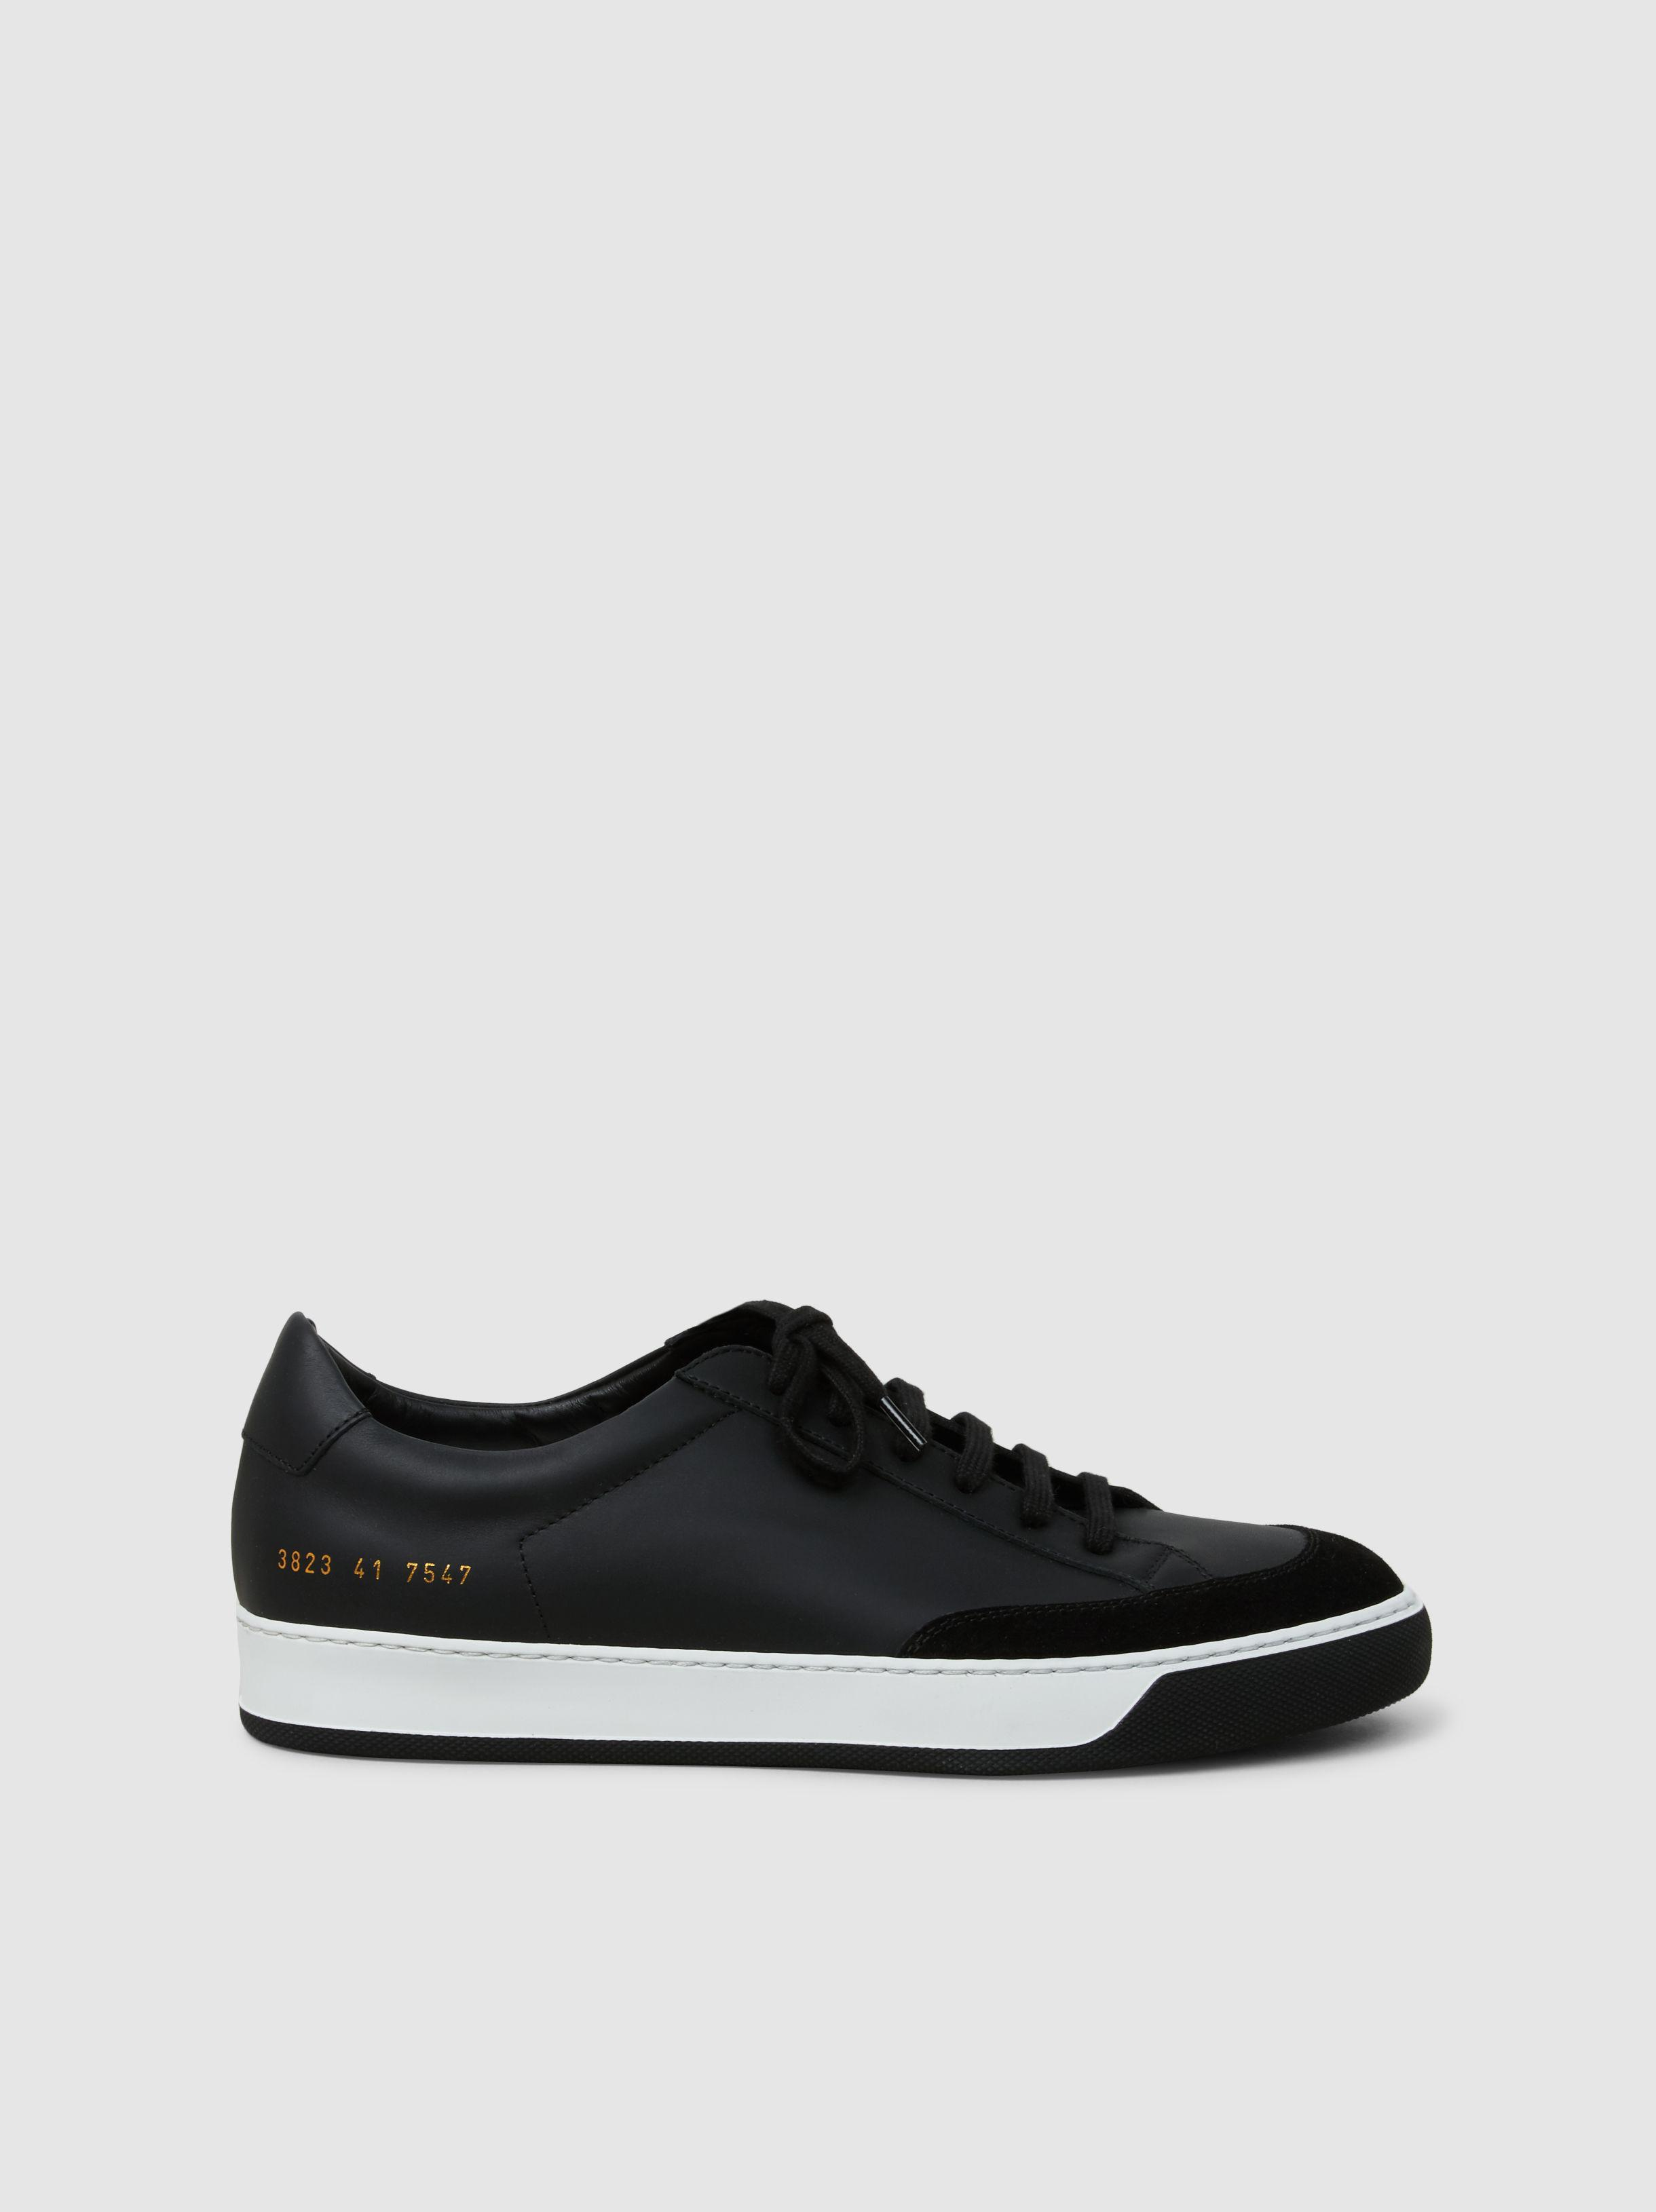 Tennis Pro Leather And Suede Trainer Common Projects wPQO6tu